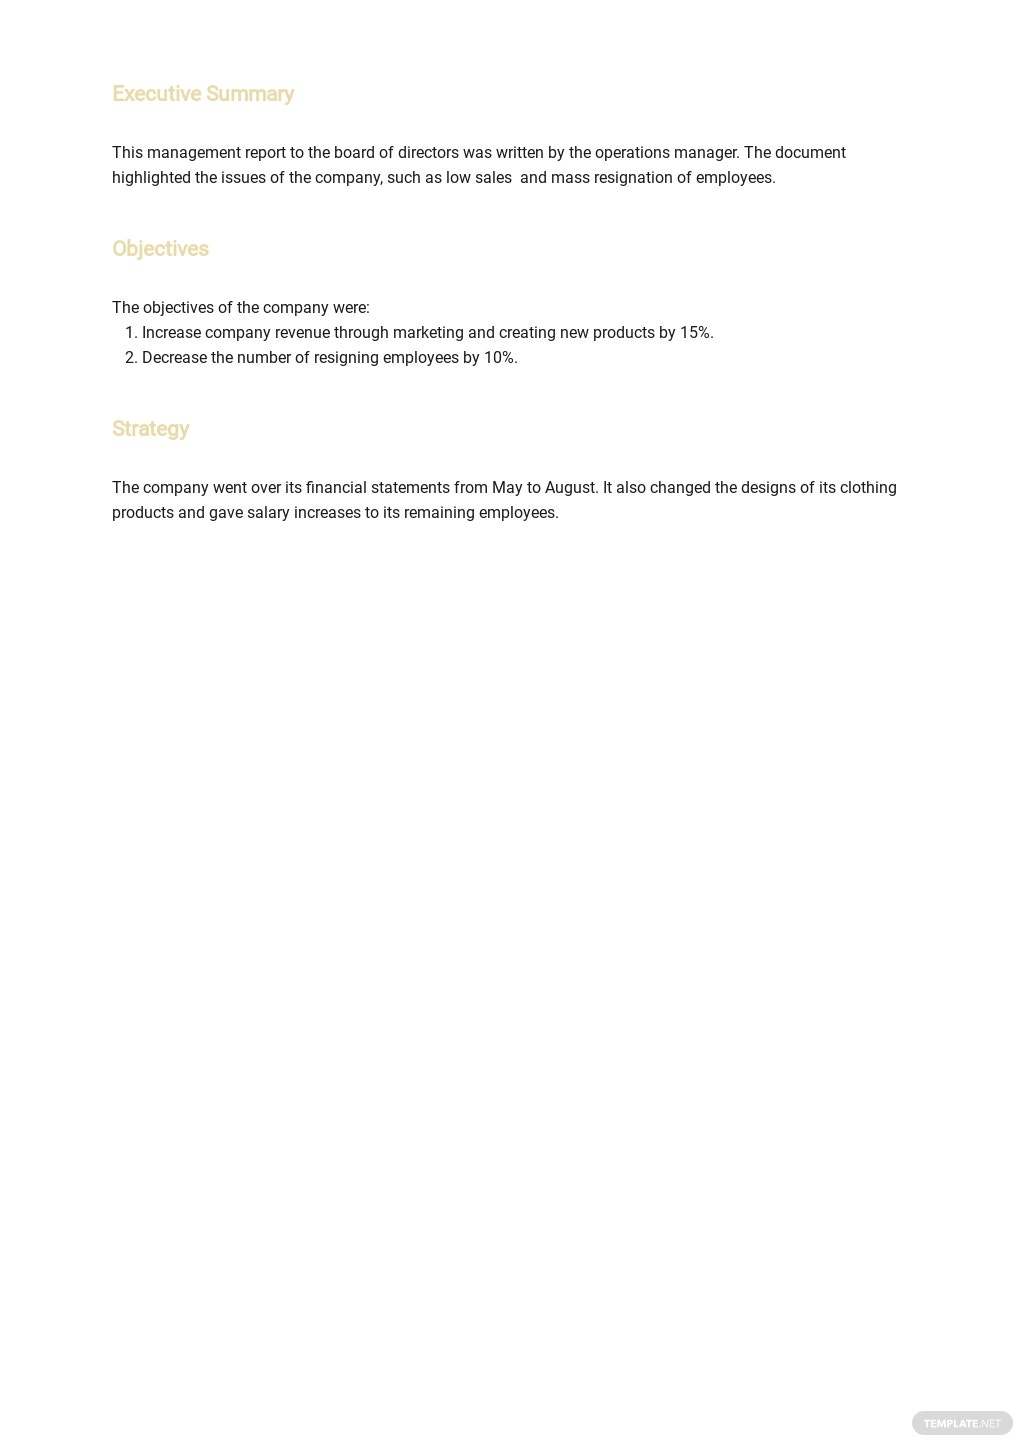 Management Report To Board of Directors Template 1.jpe